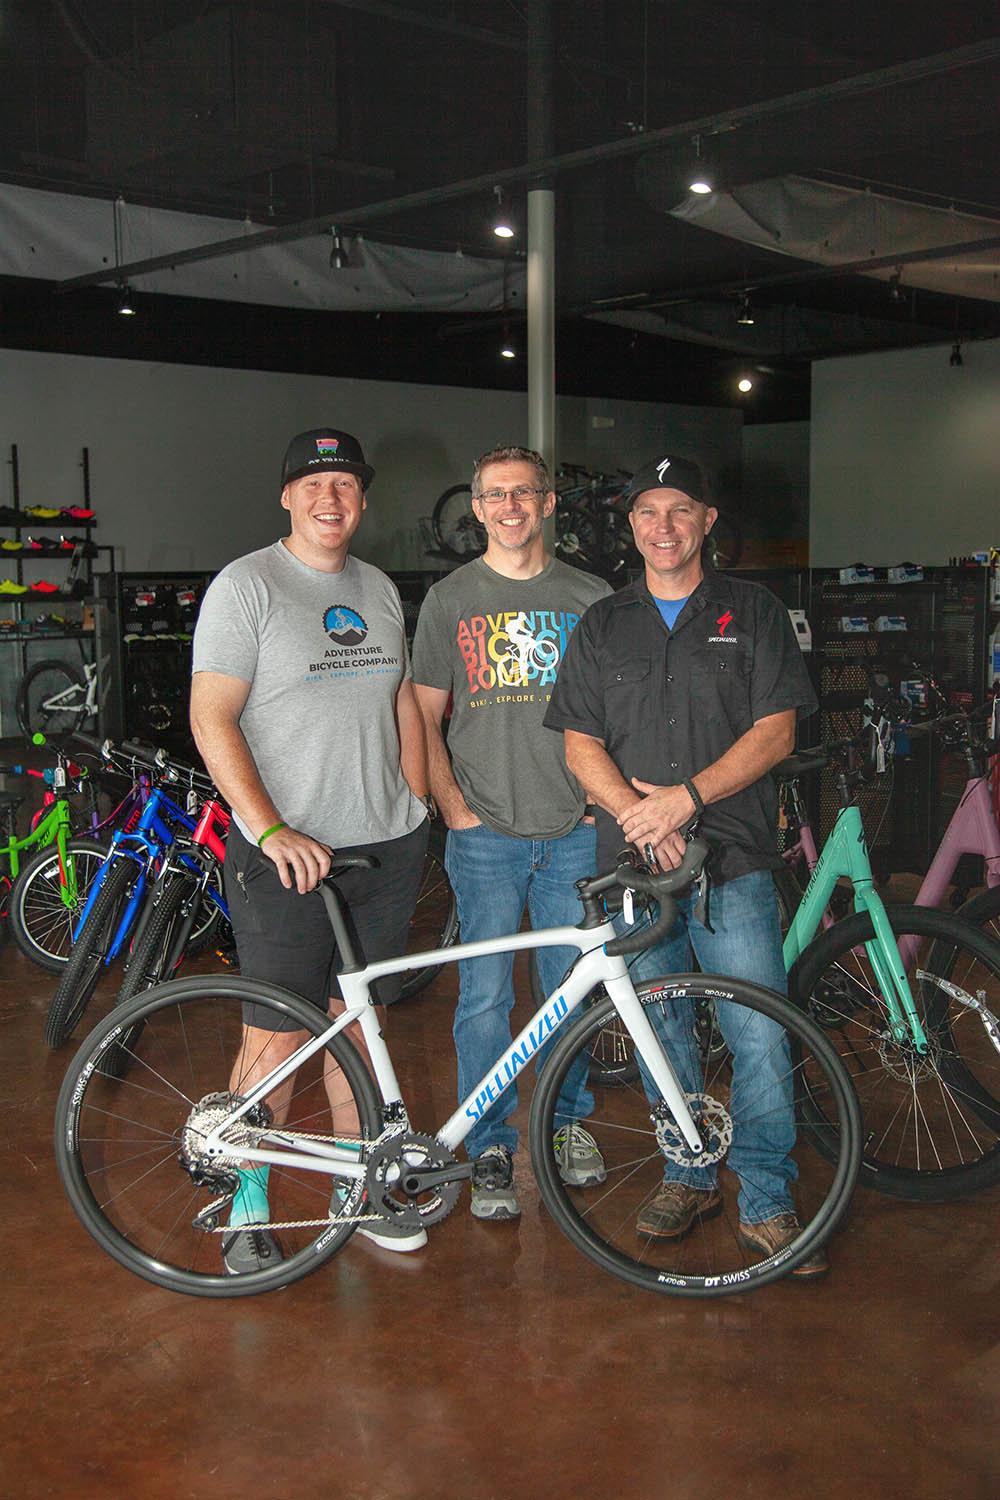 Colin Brixey, Jason Johannpeter and Jason Allen, Adventure Bicycle Co.